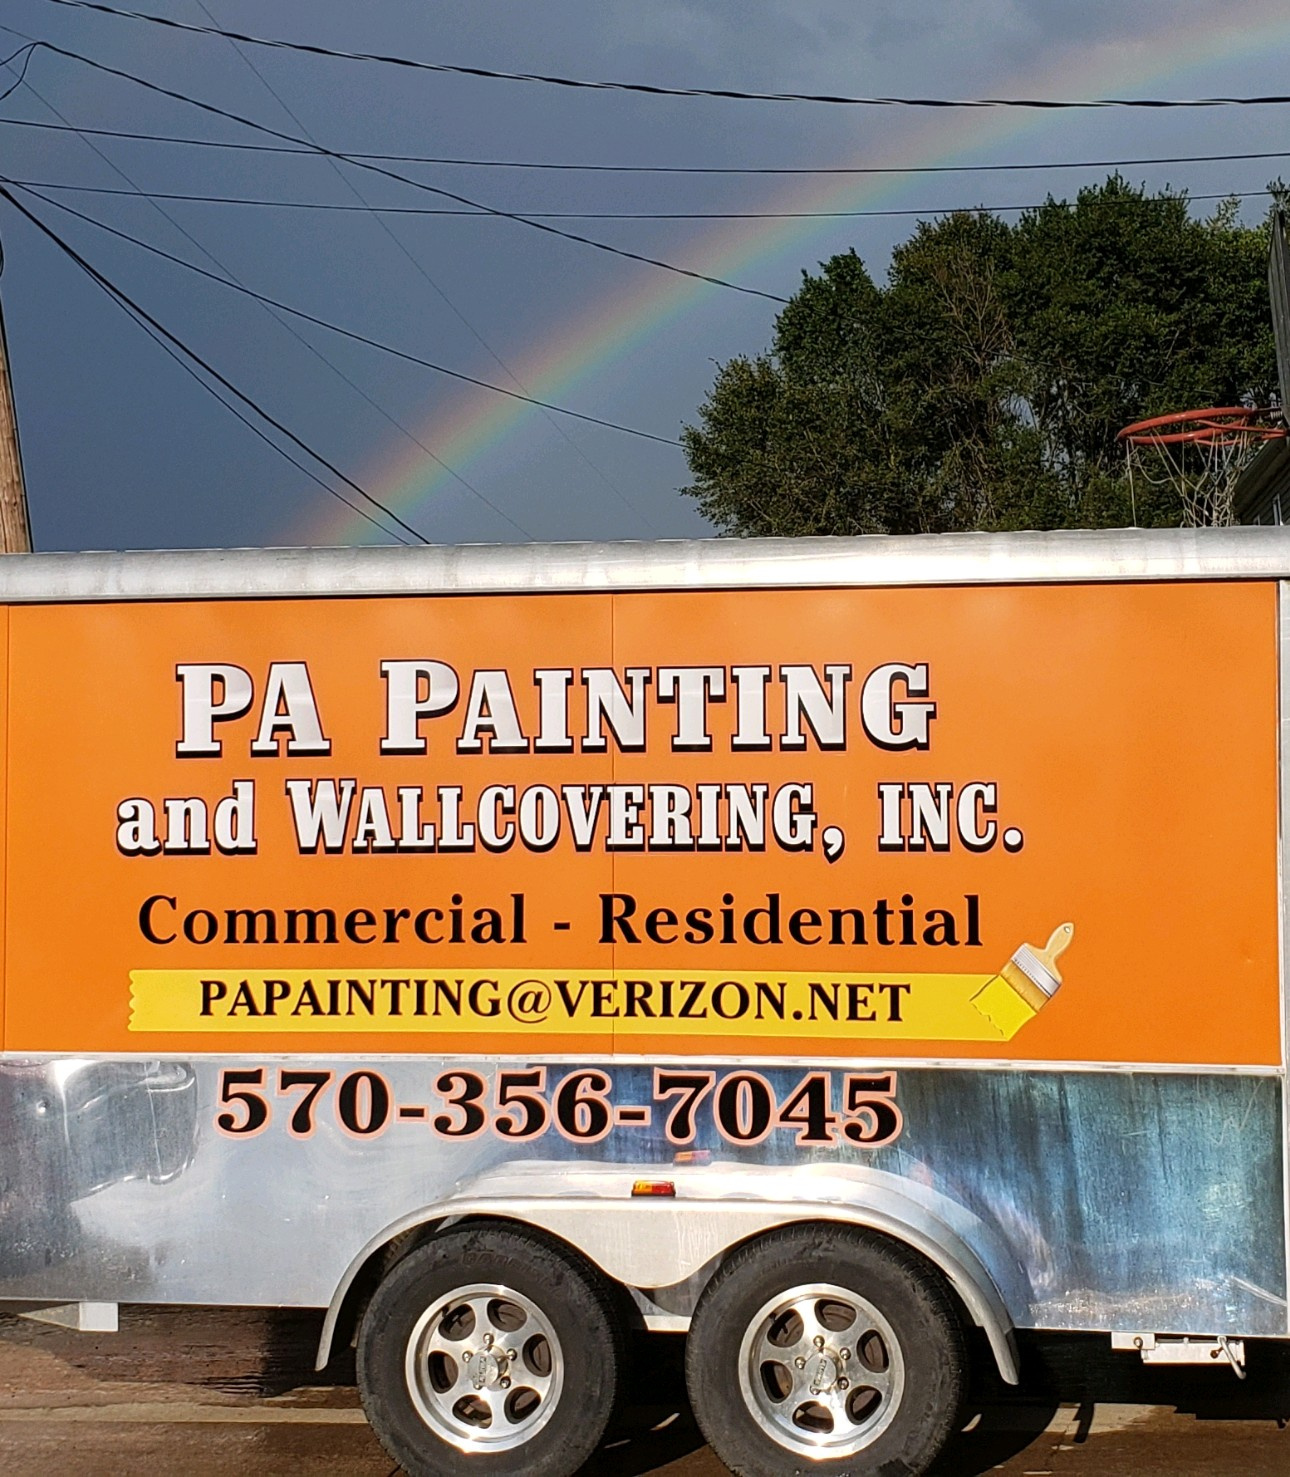 PA Painting and Wallcovering